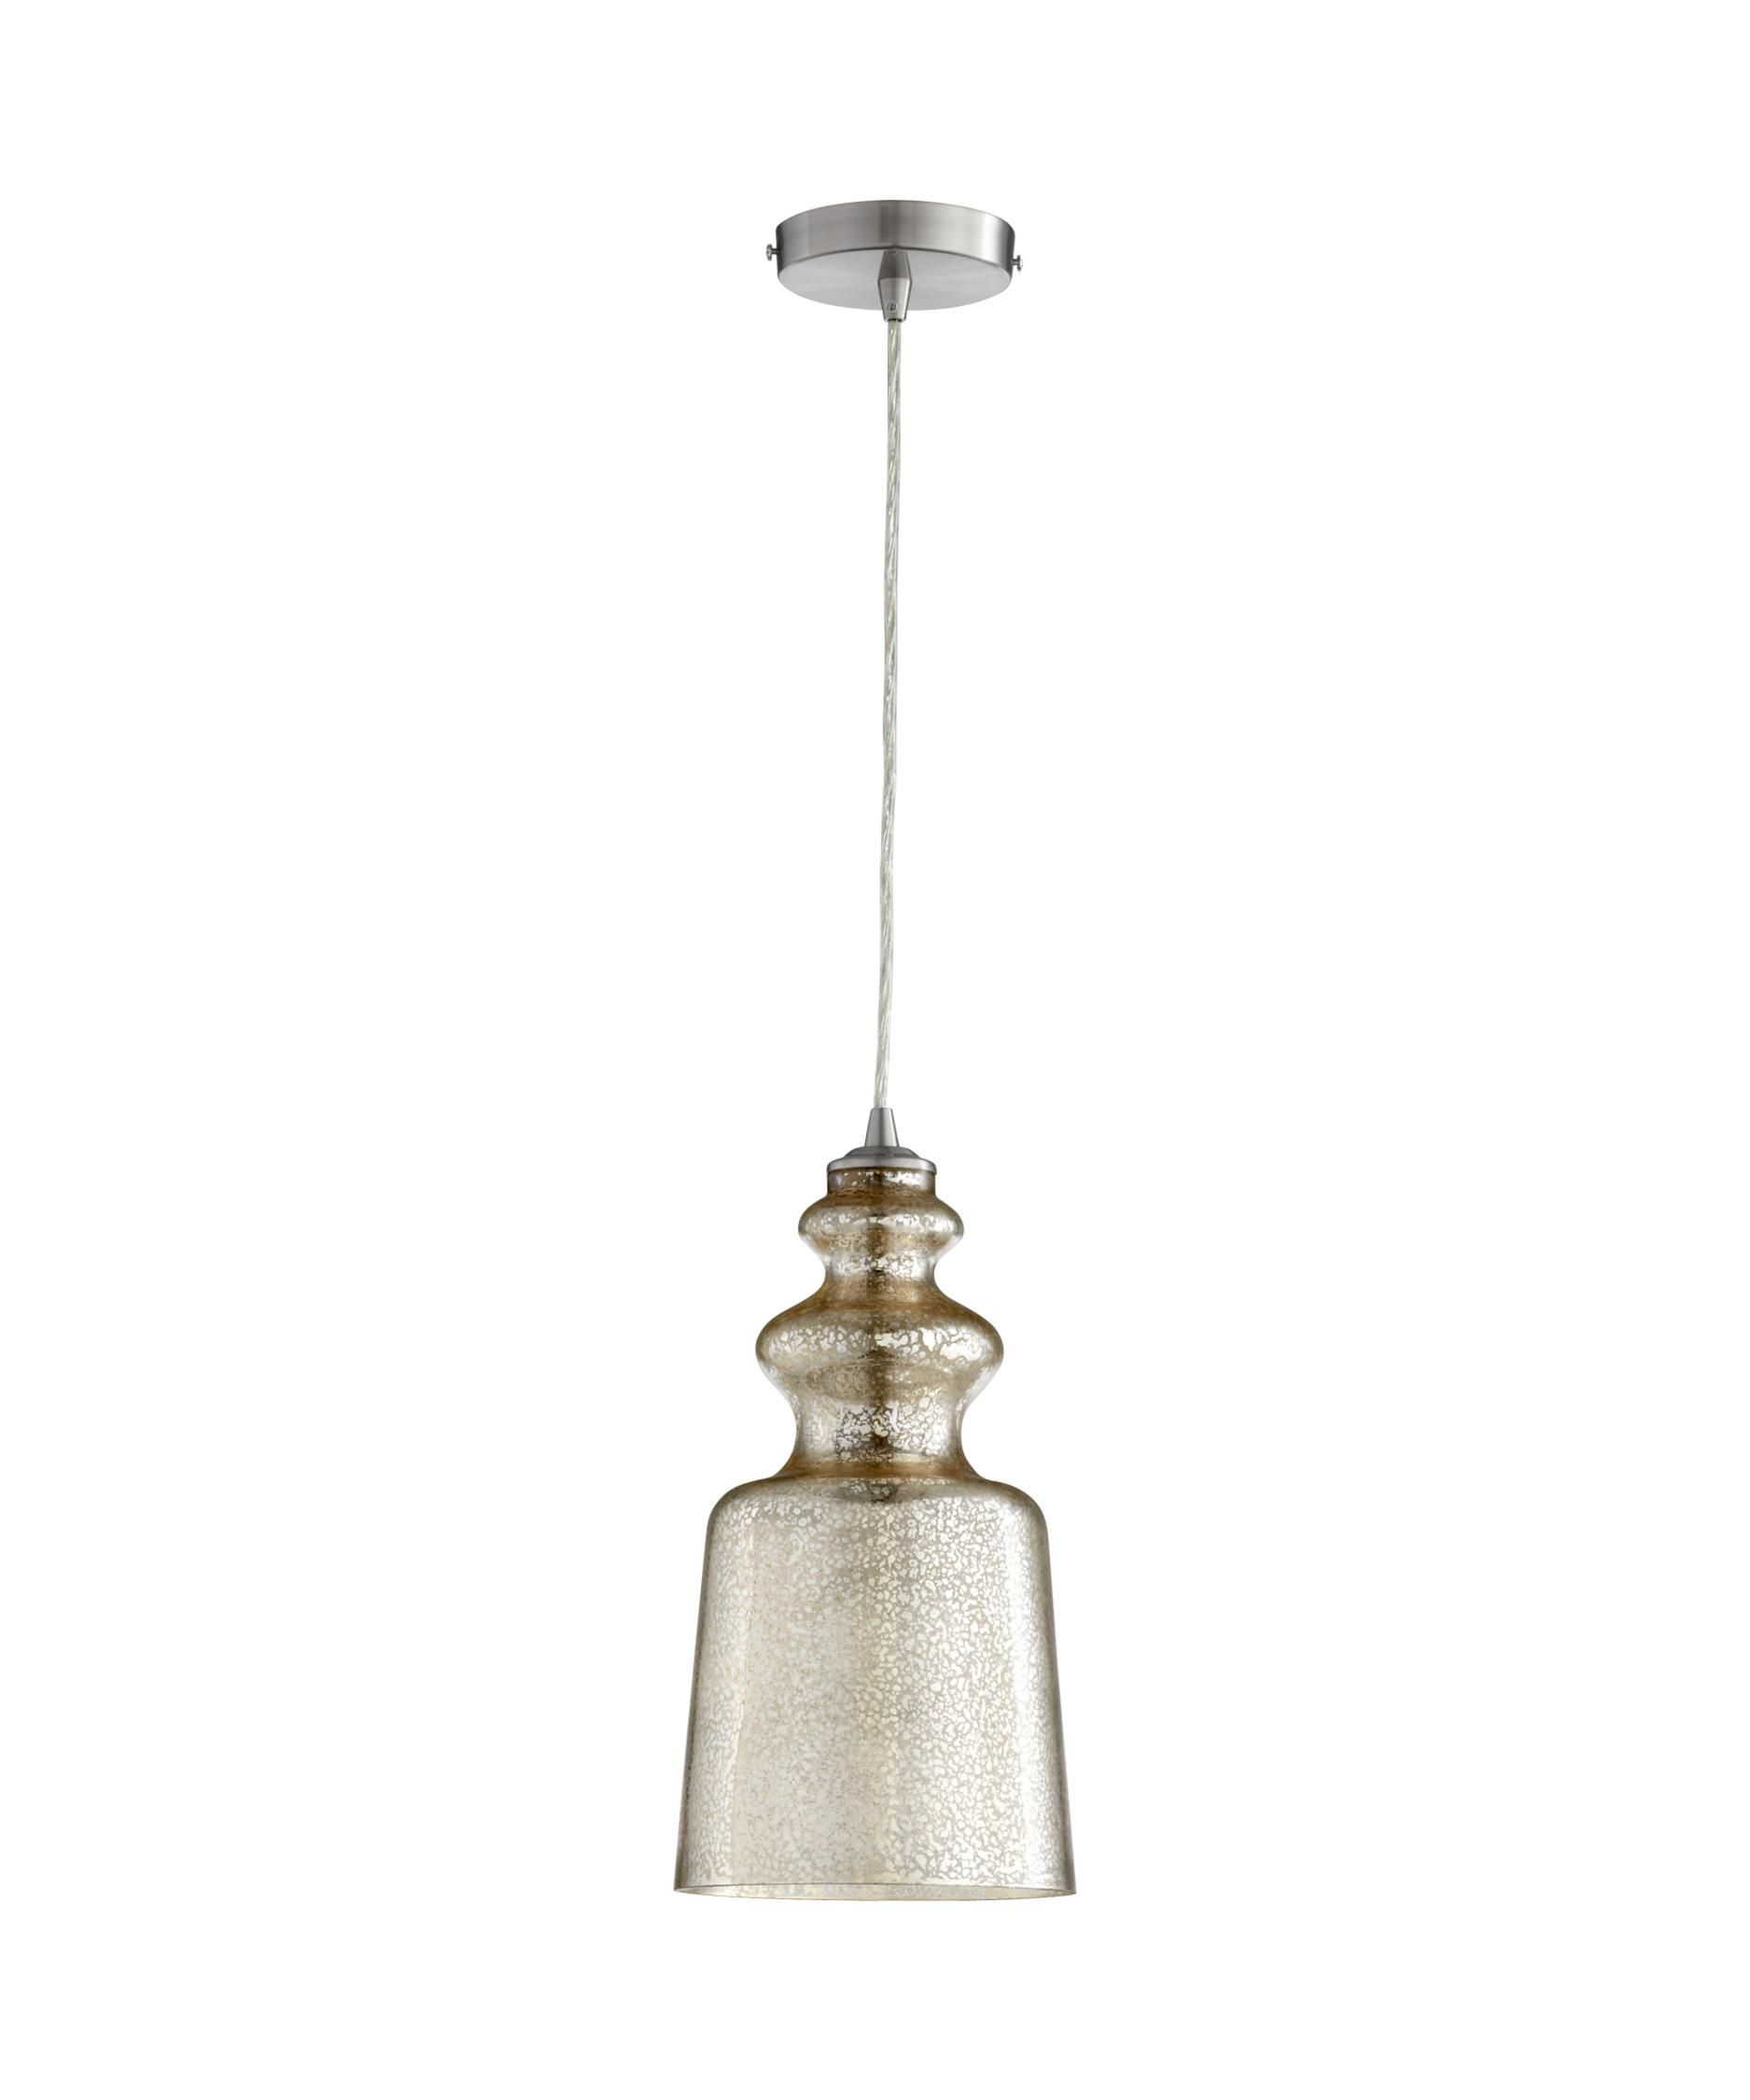 fixtures s glass pendant mercury shades uk light ceilg fixture